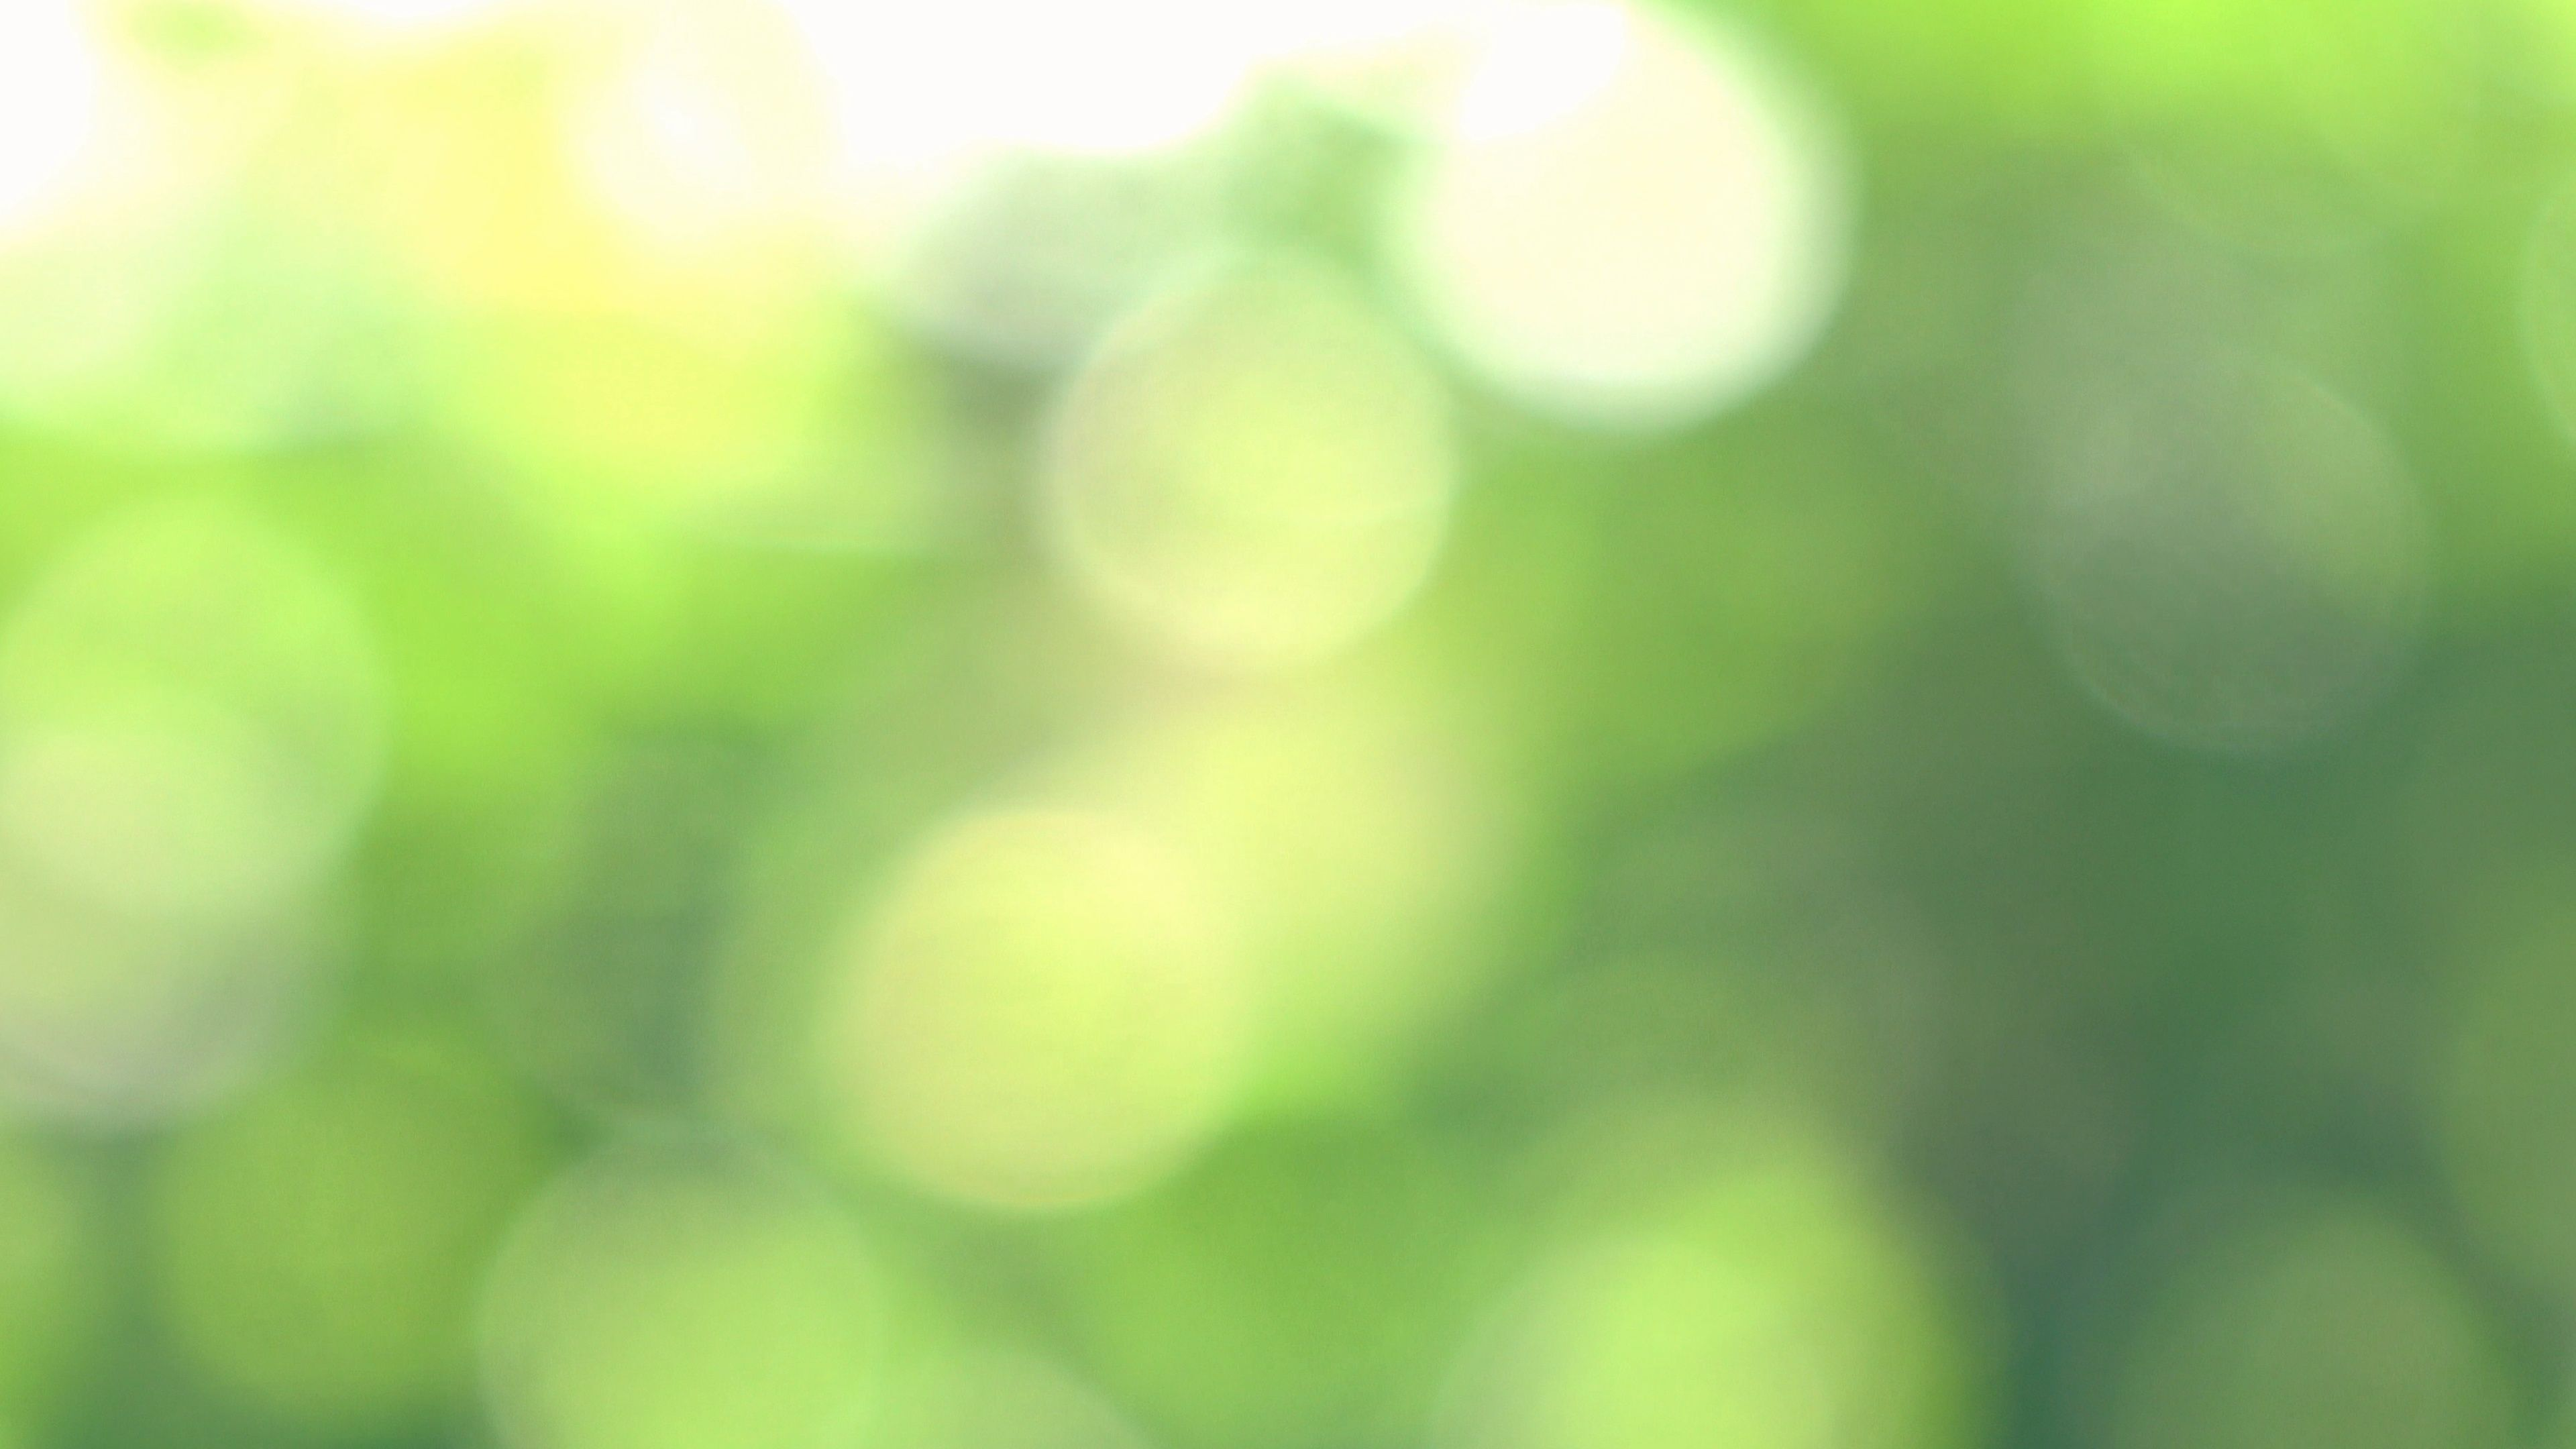 Abstract Nature Background Bokeh Footage Of Glowing Green Leaves In Sunlight Stock Footage Bokeh Footage Nature Backgrounds Abstract Nature Bokeh Background